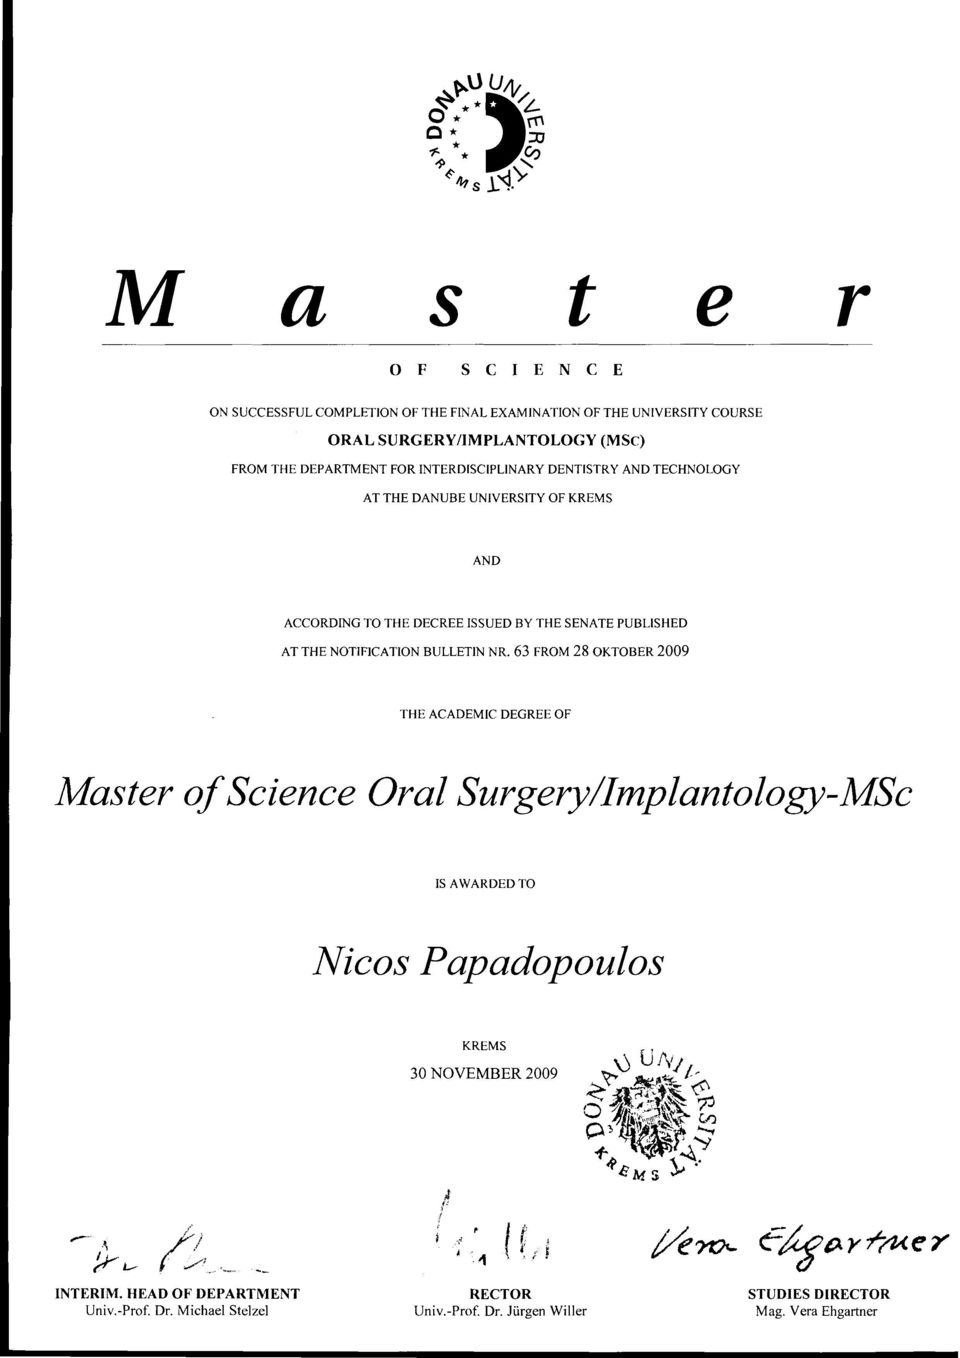 63 FRoM 28 OKTOBER 2OO9 THE ACADEMIC DEGREE OF Master of Science Oral Surgery/Implantology-MSc IS AWARDED TO I{icos Papadopoulos KREMS 30 NOVEMBER 2OO9 A ; -.